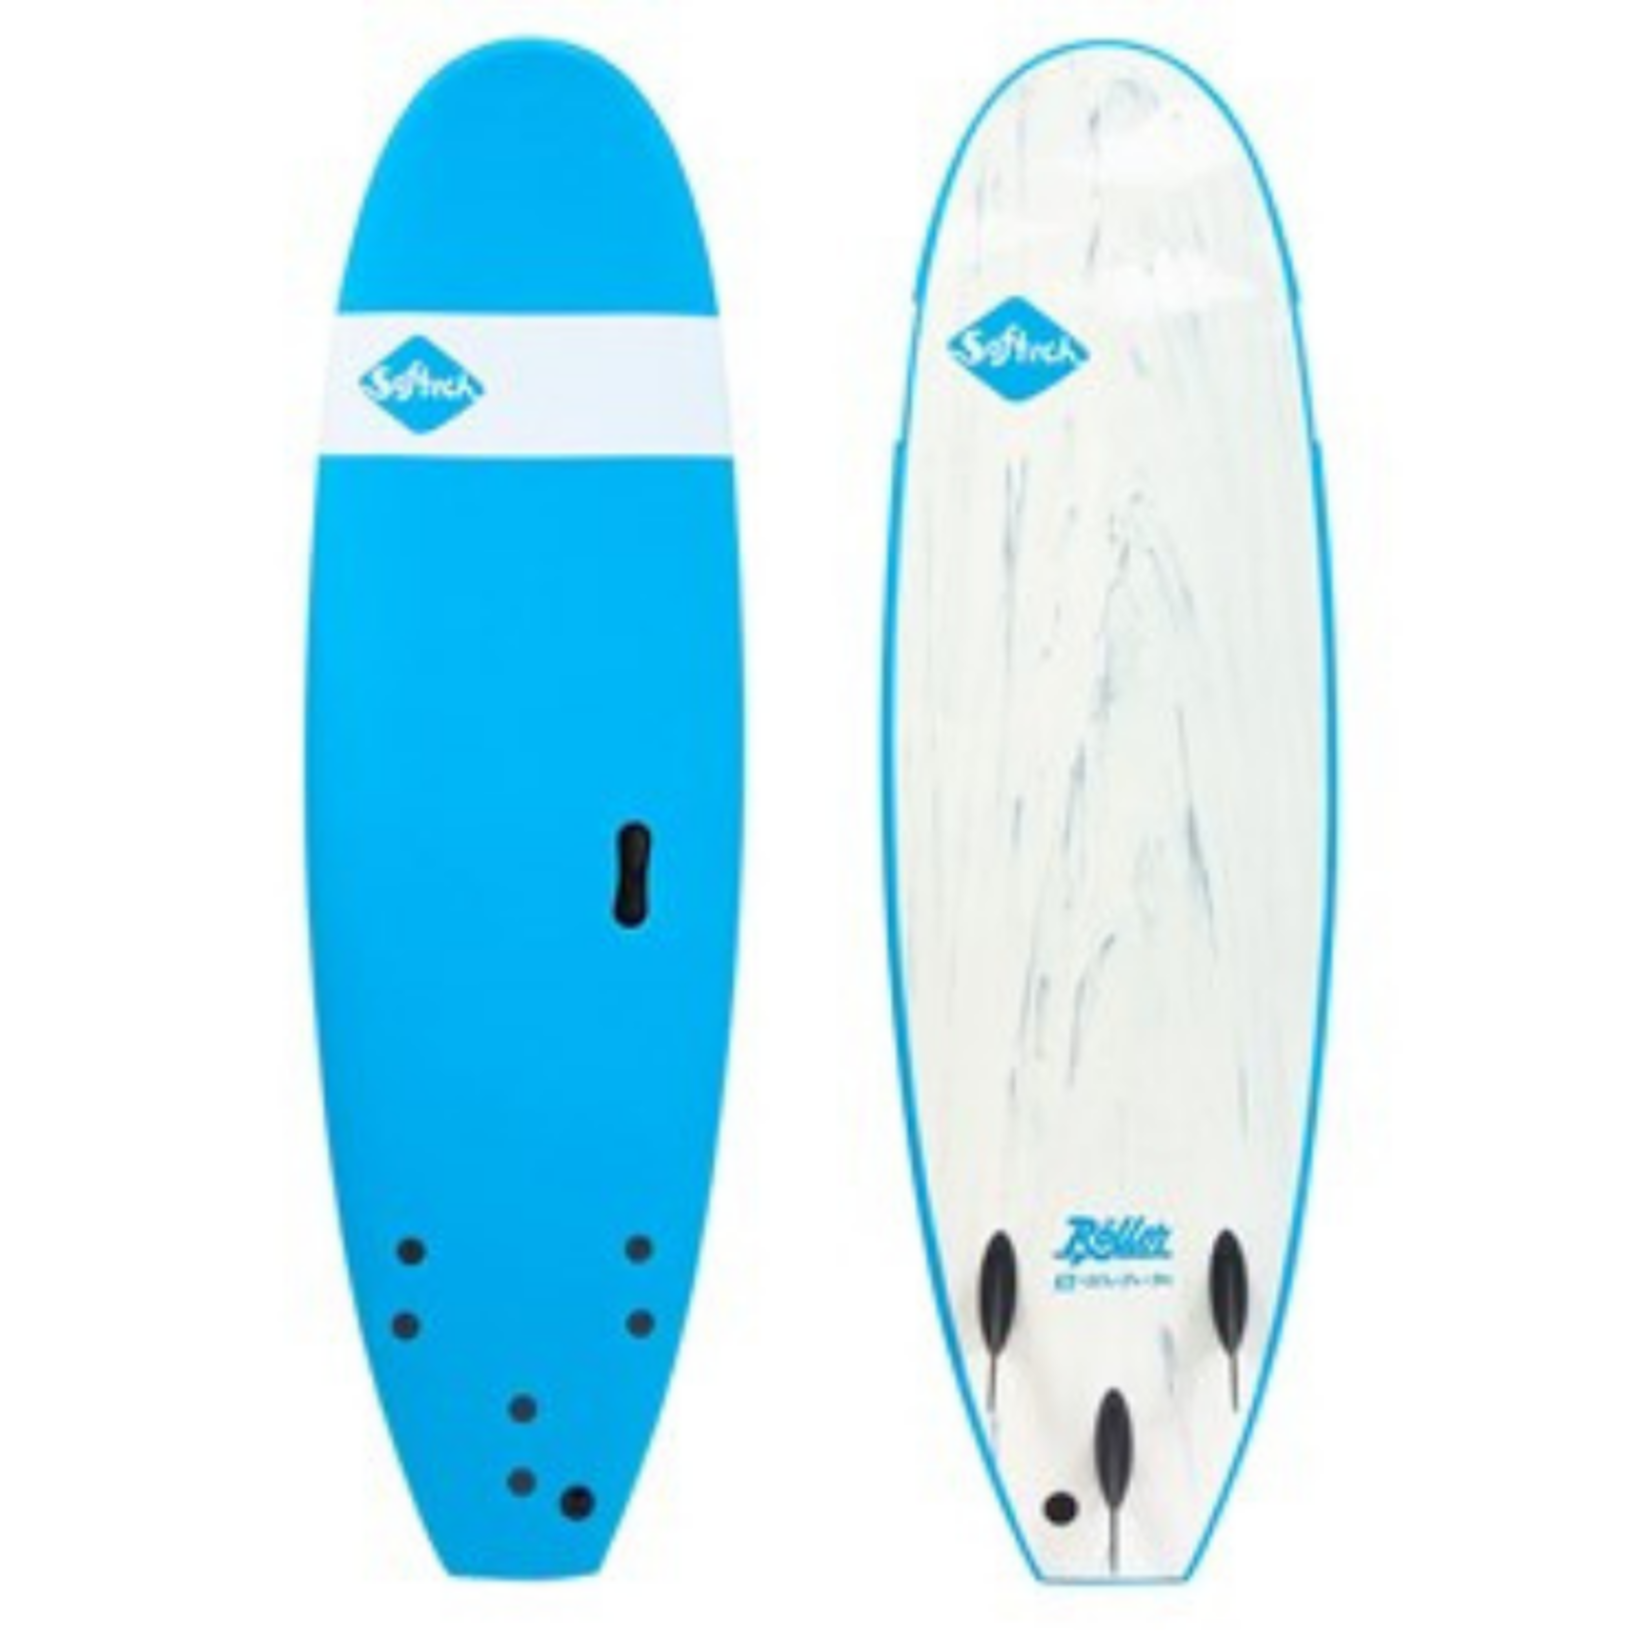 Softech Surfboards Softec roller 9'0